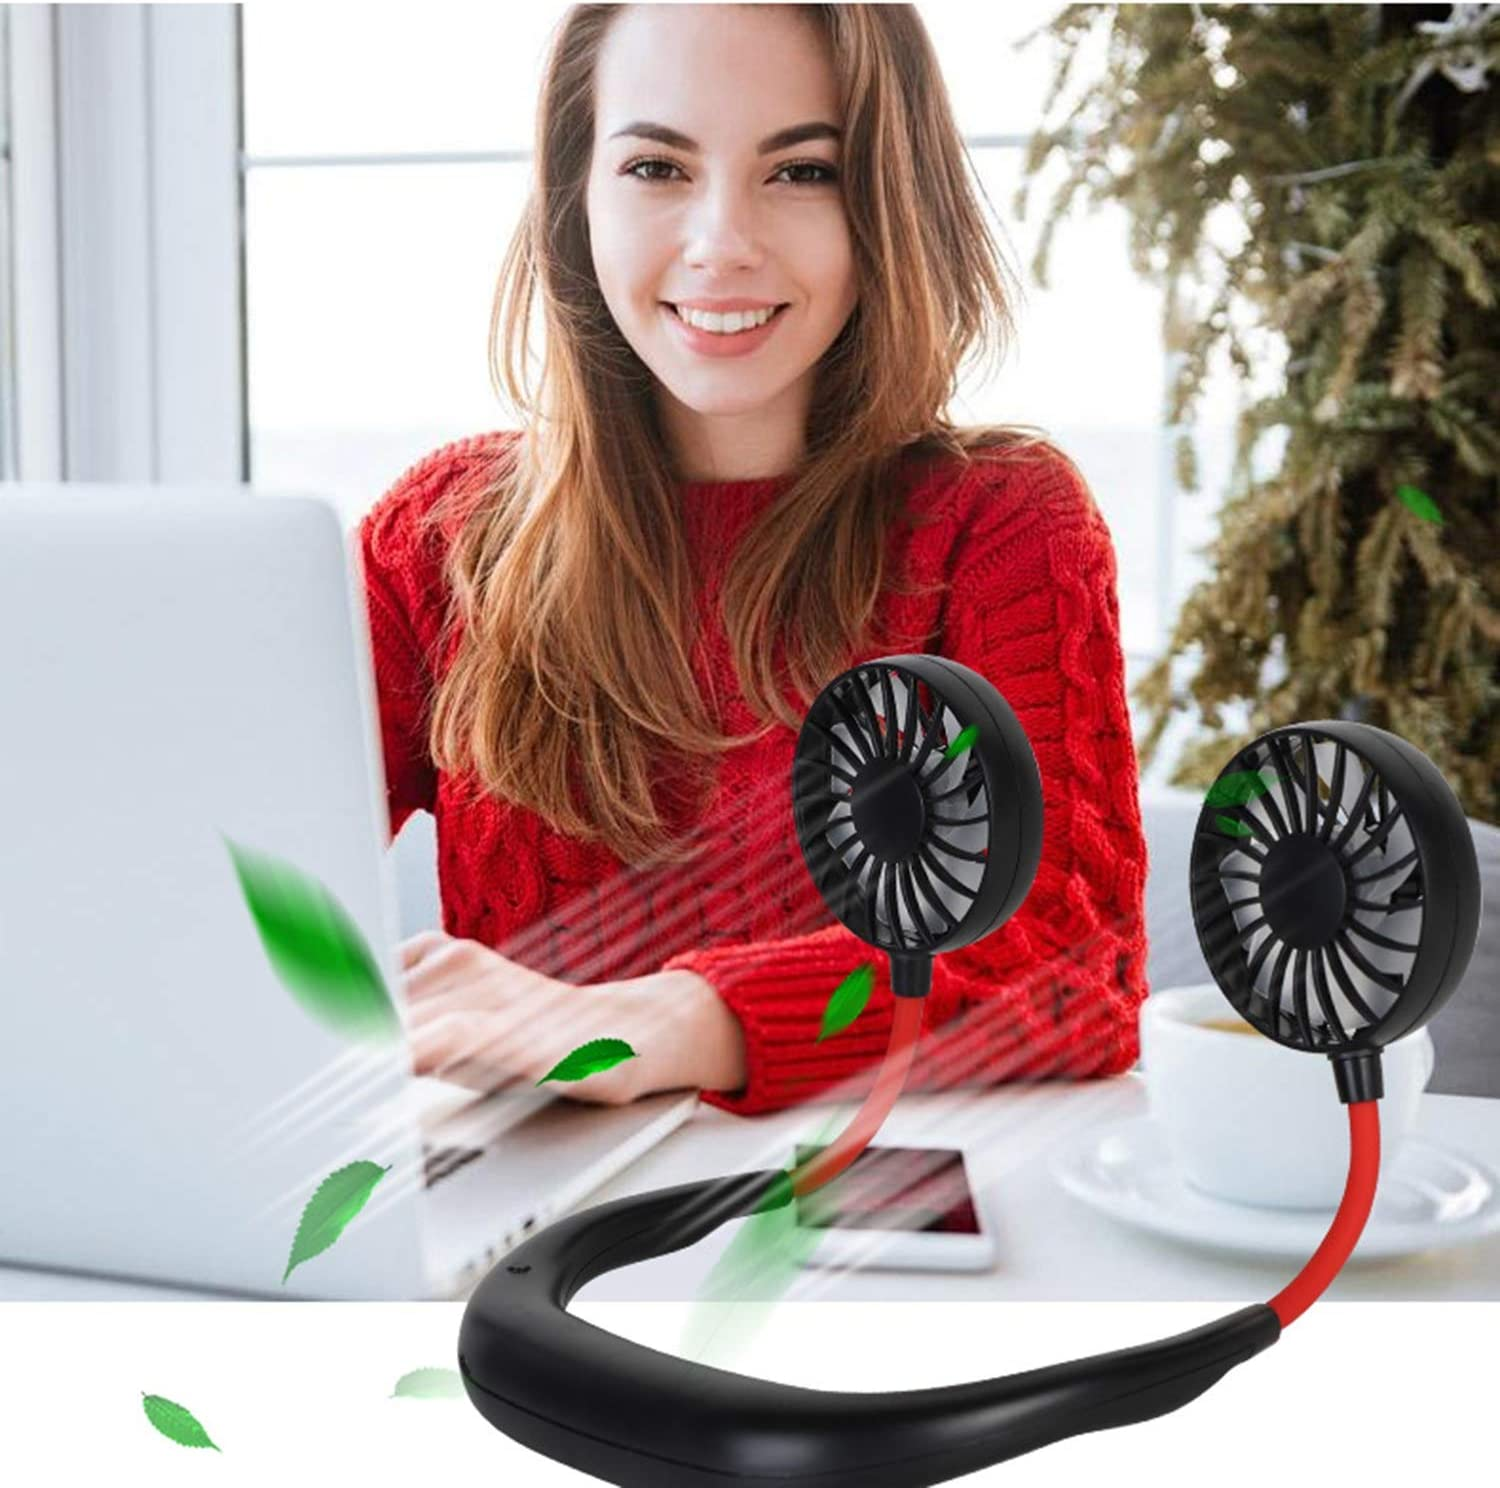 Xch USB Charged Mini Fan Built-in Rechargeable Battery Portable USB Personal Fan with USB Cable 3 Speeds and 360 Degree Rotation for